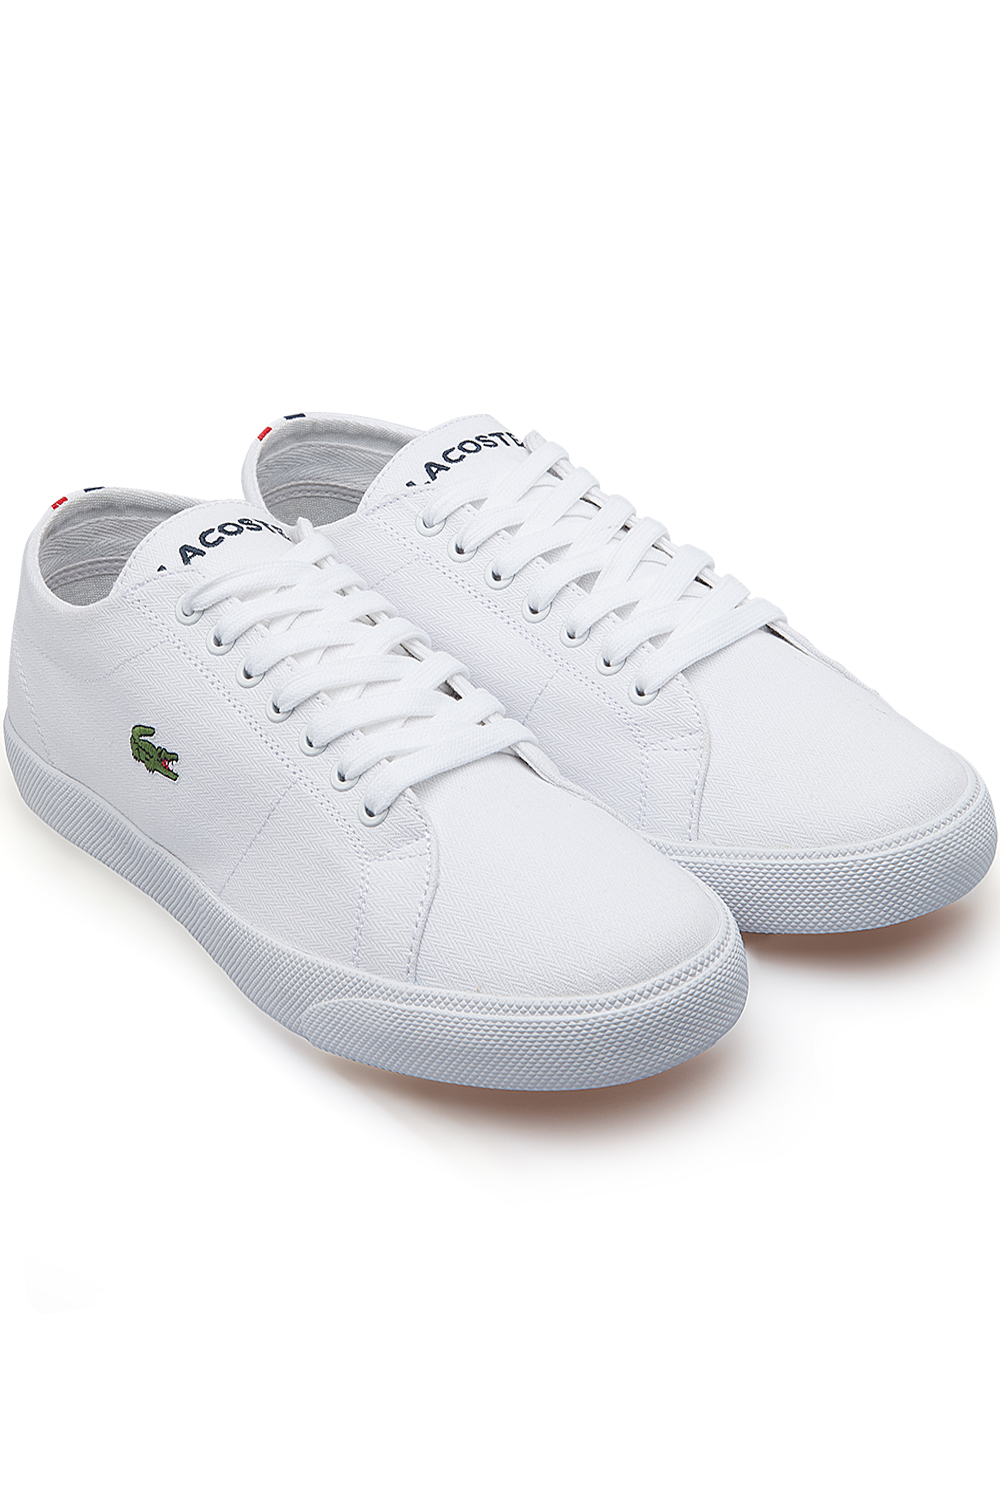 d15f3d6f Lacoste Marcel Frs Sneakers White | 365ist